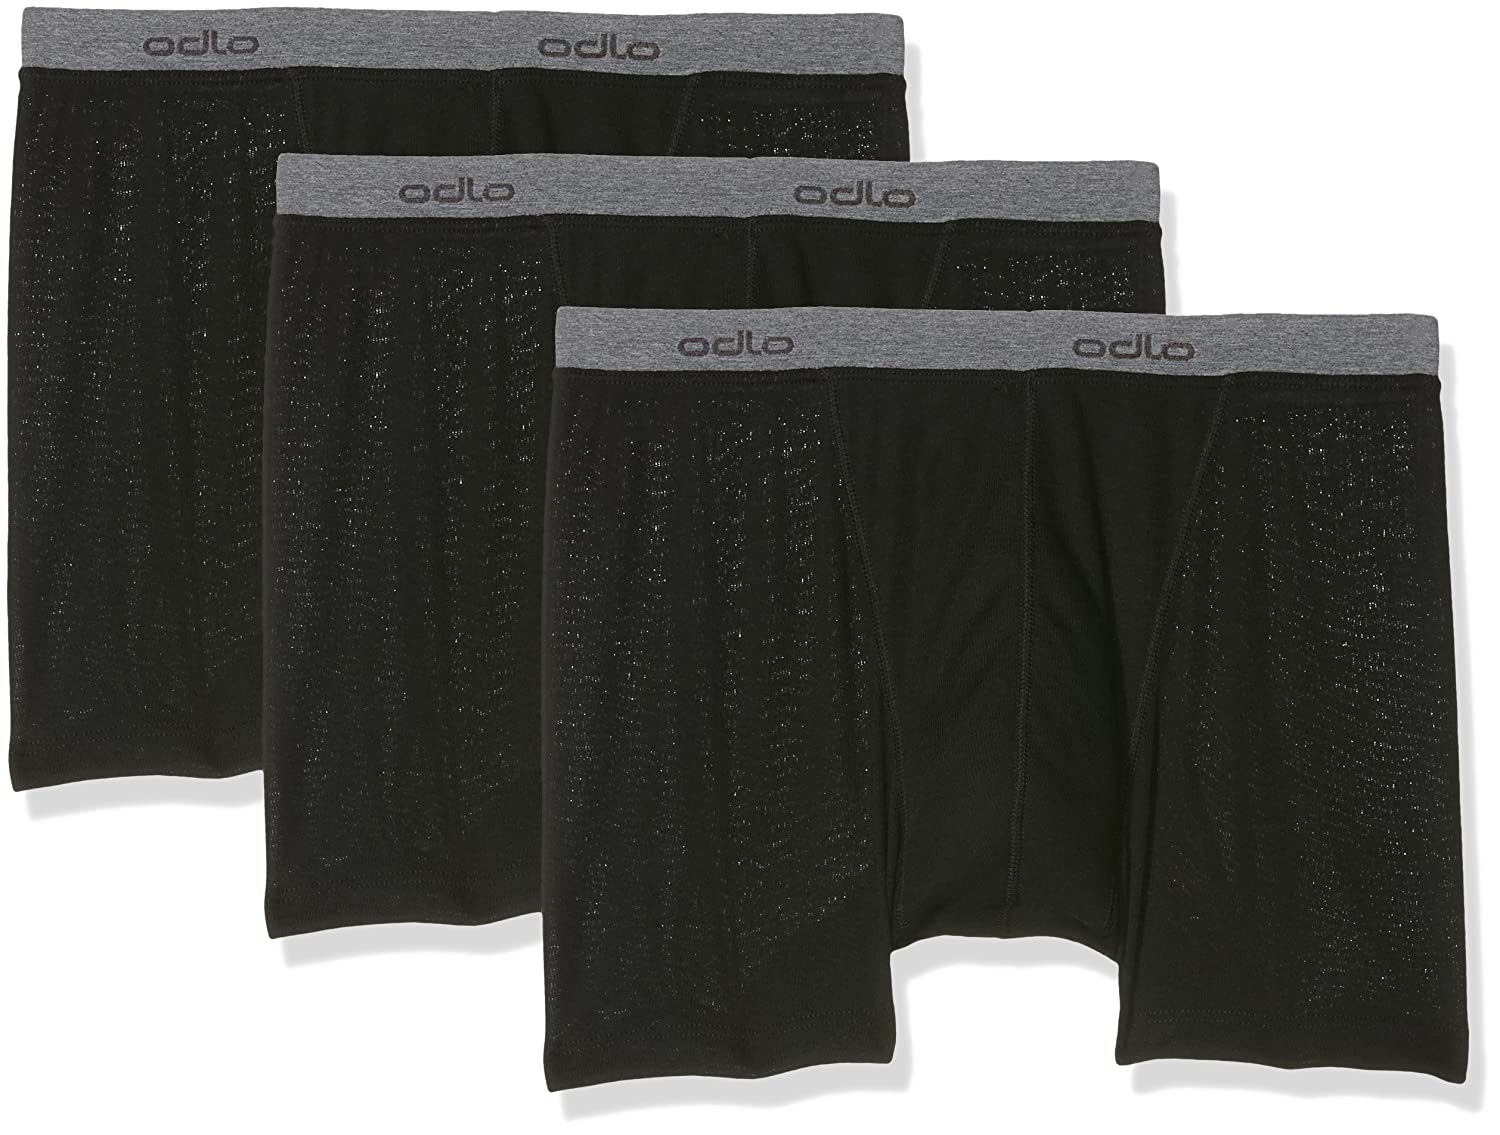 Odlo Men鈥瞫 Boxer shorts Light 3 Pack 192302-15000